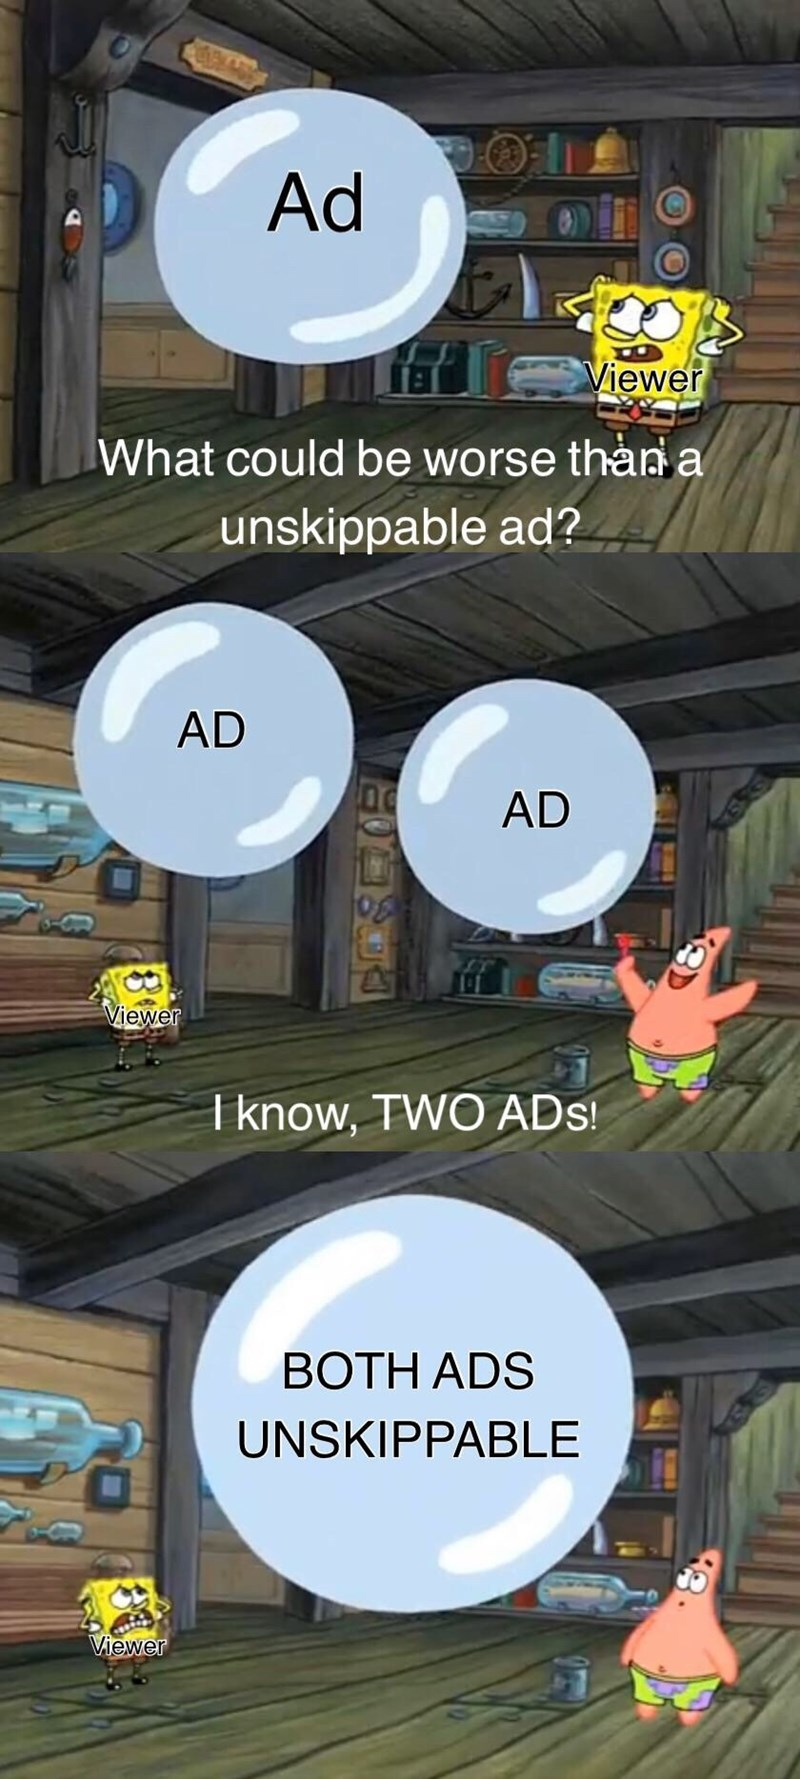 Cartoon - Ad Viewer What could be worse than a unskippable ad? AD AD Viewer I know, TWO ADs! BOTH ADS UNSKIPPABLE Viewer